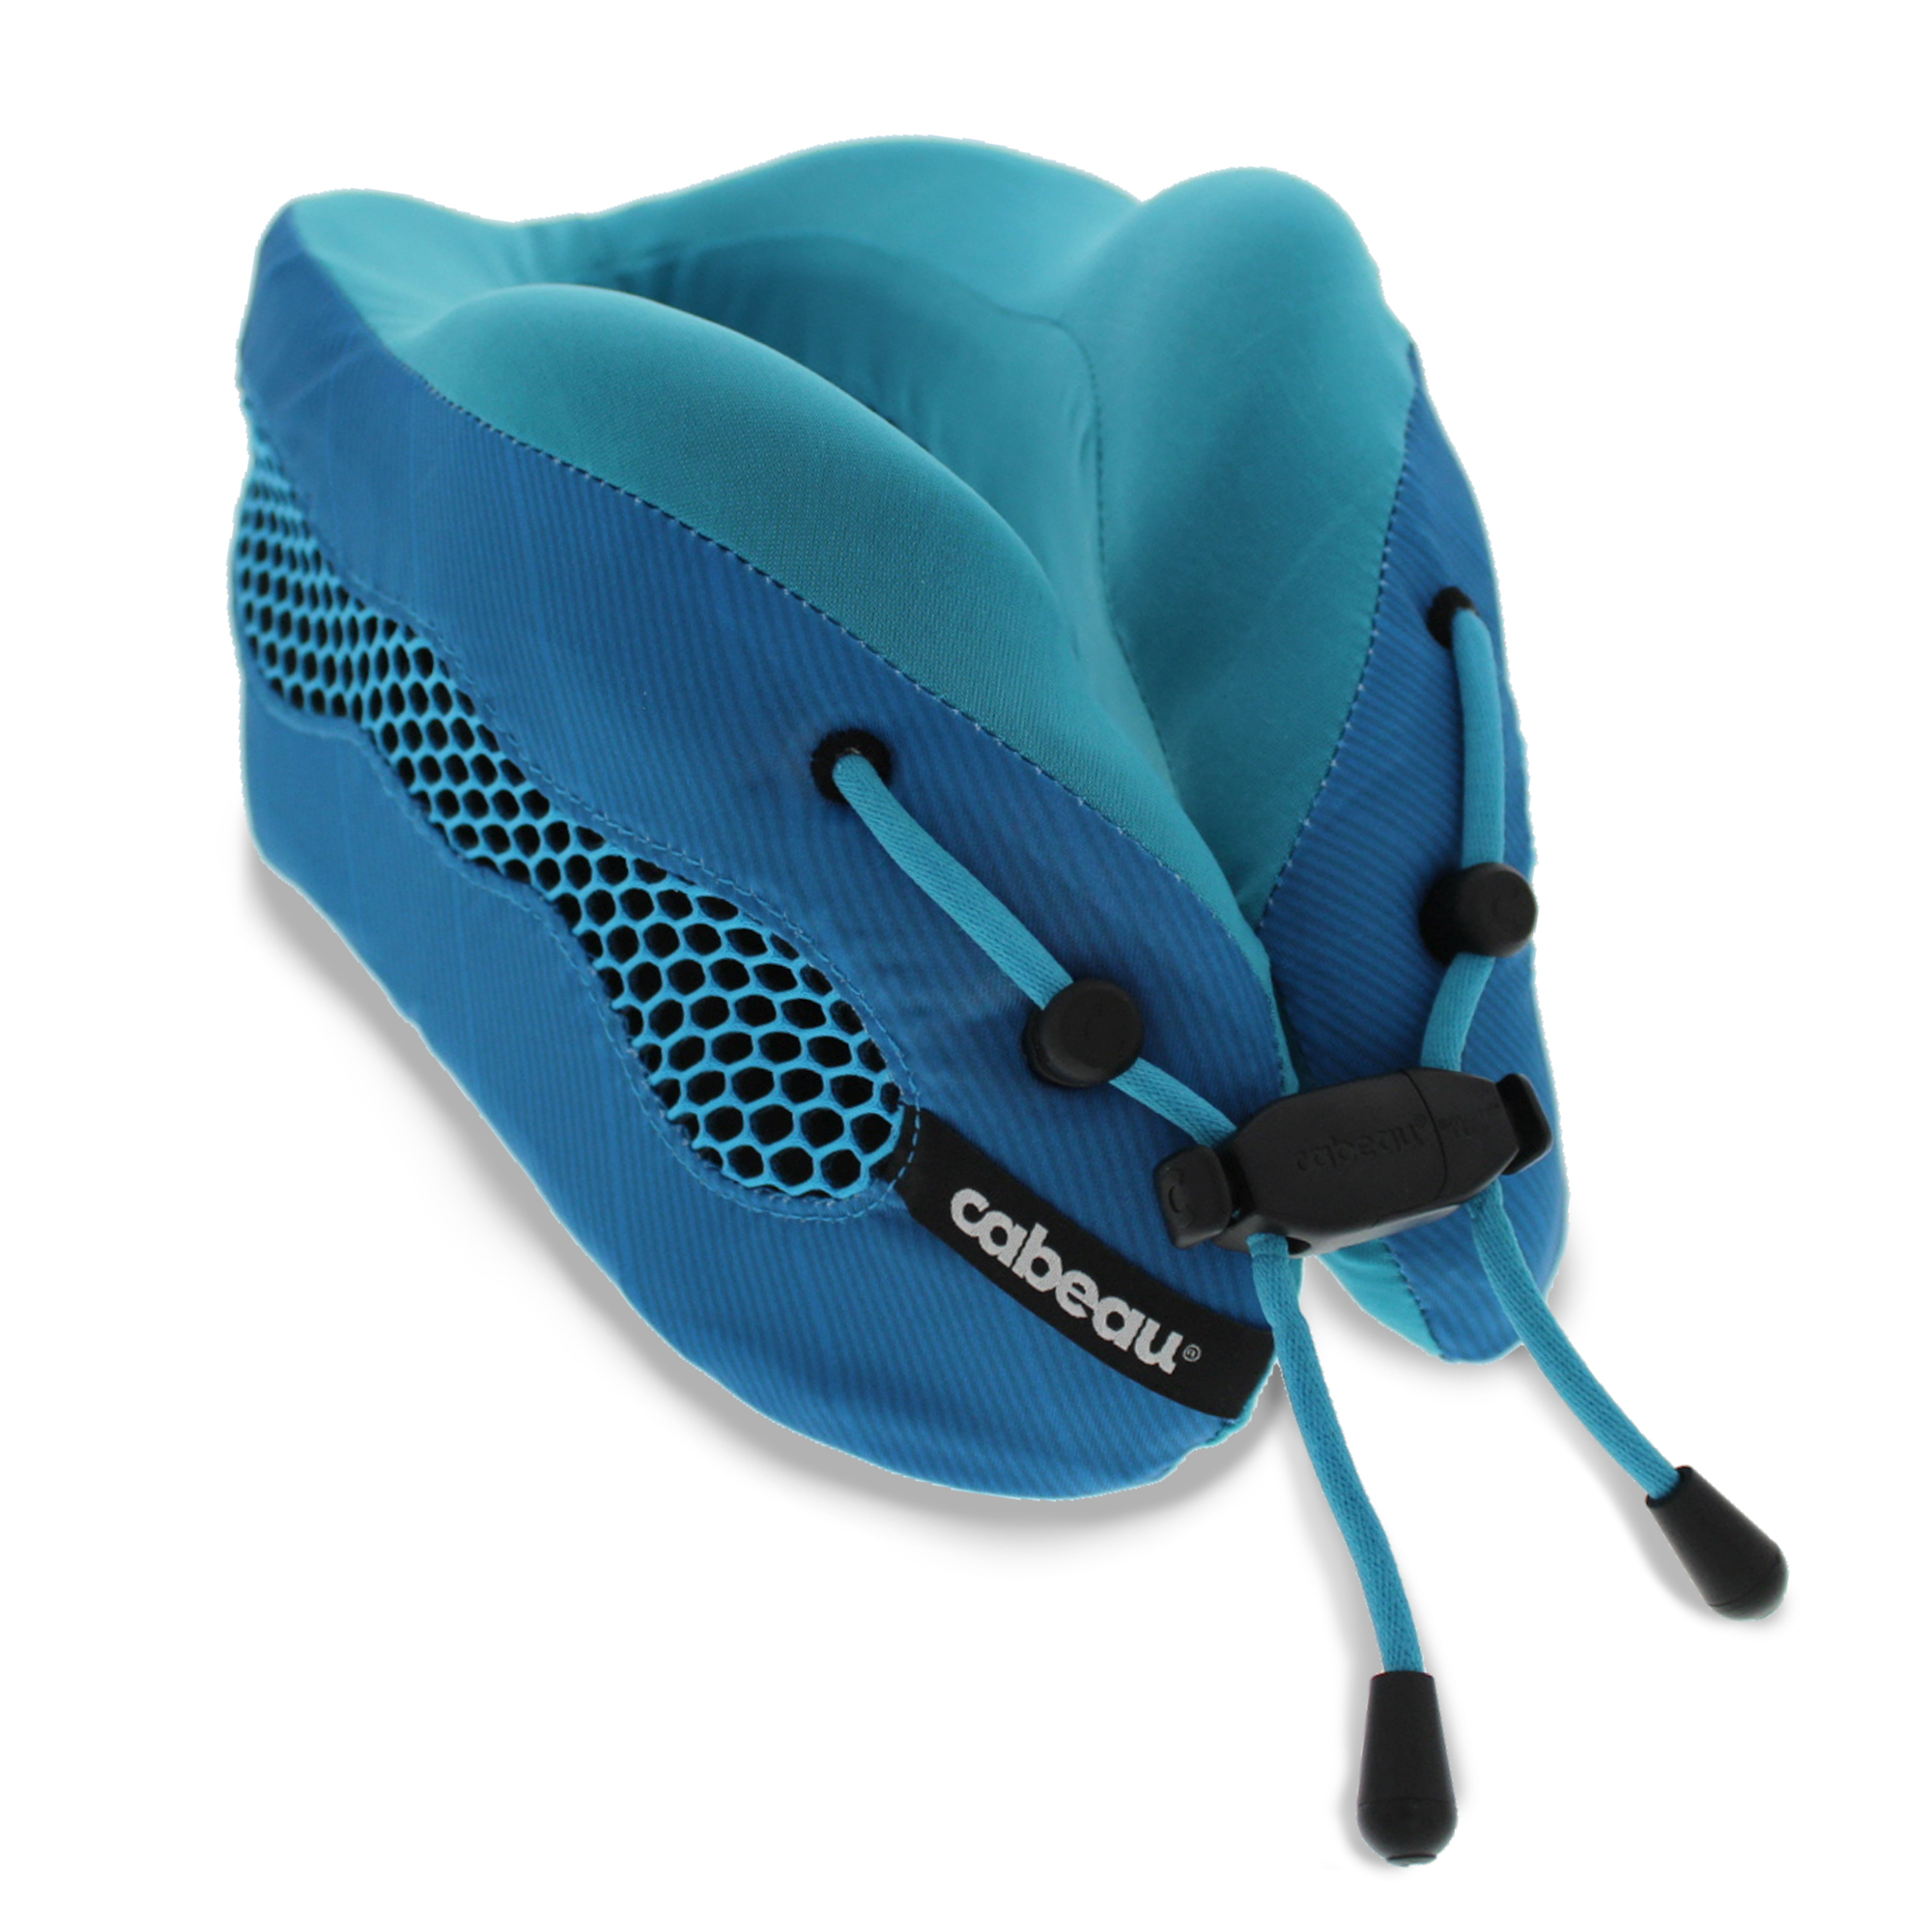 Cabeau Improves Evolution Cool Travel Pillow For Cannes